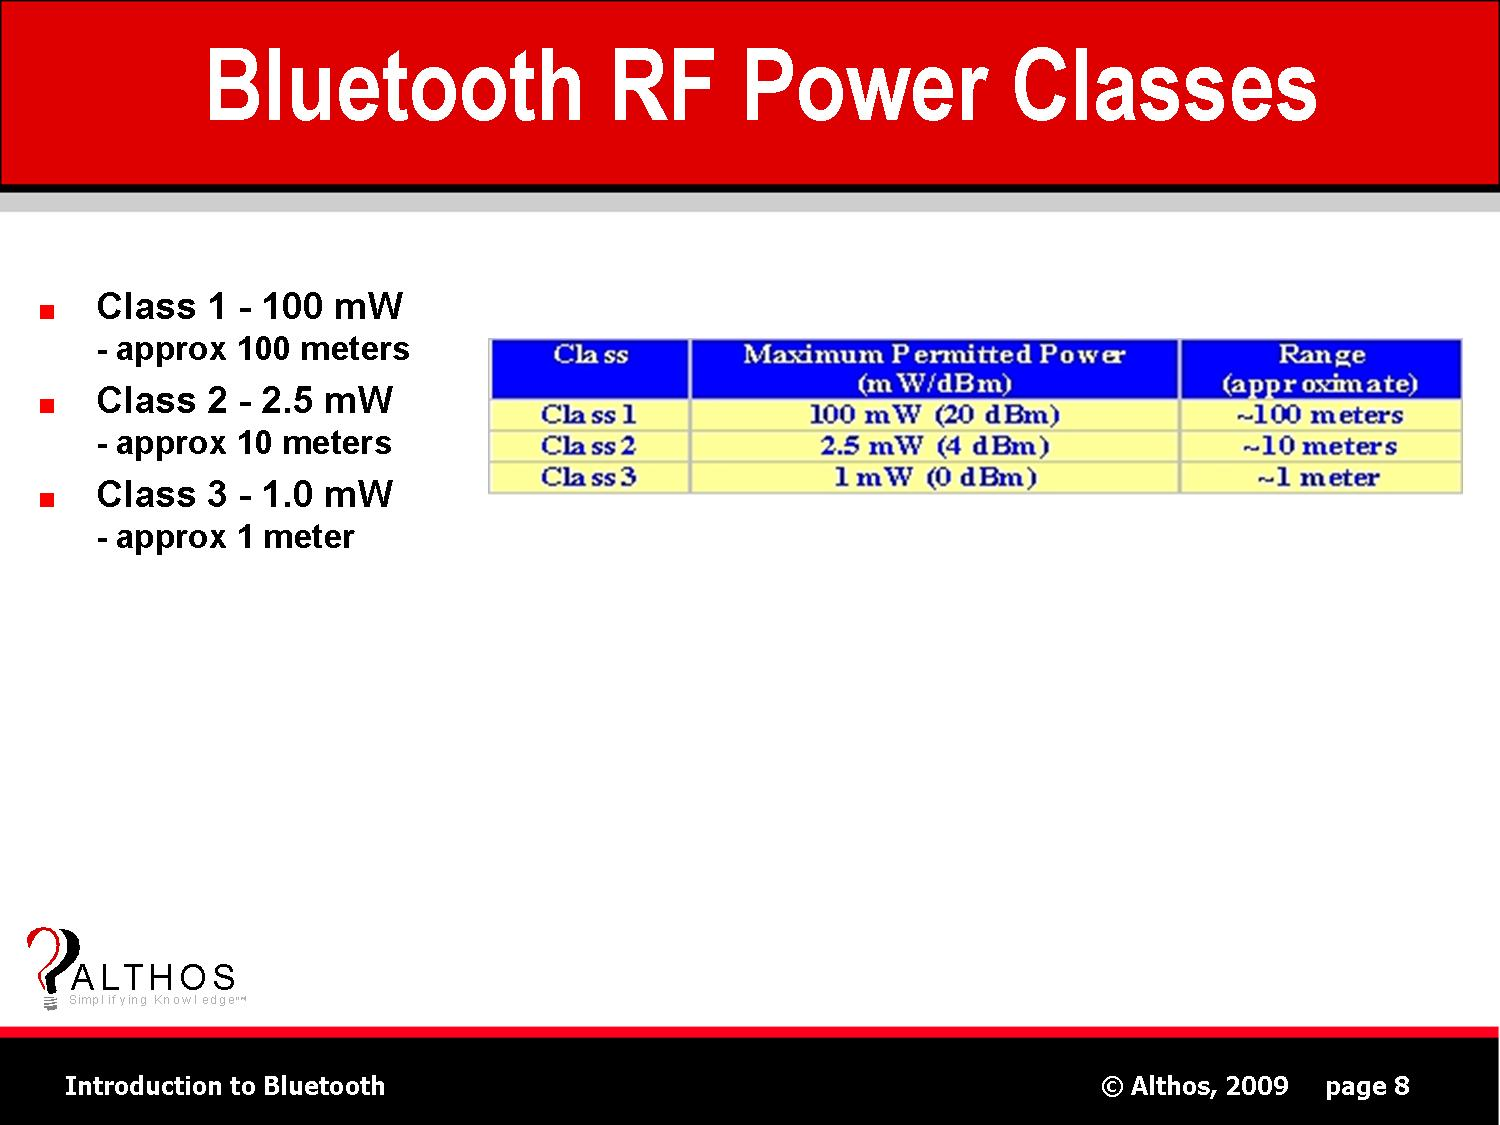 RF Power Classes